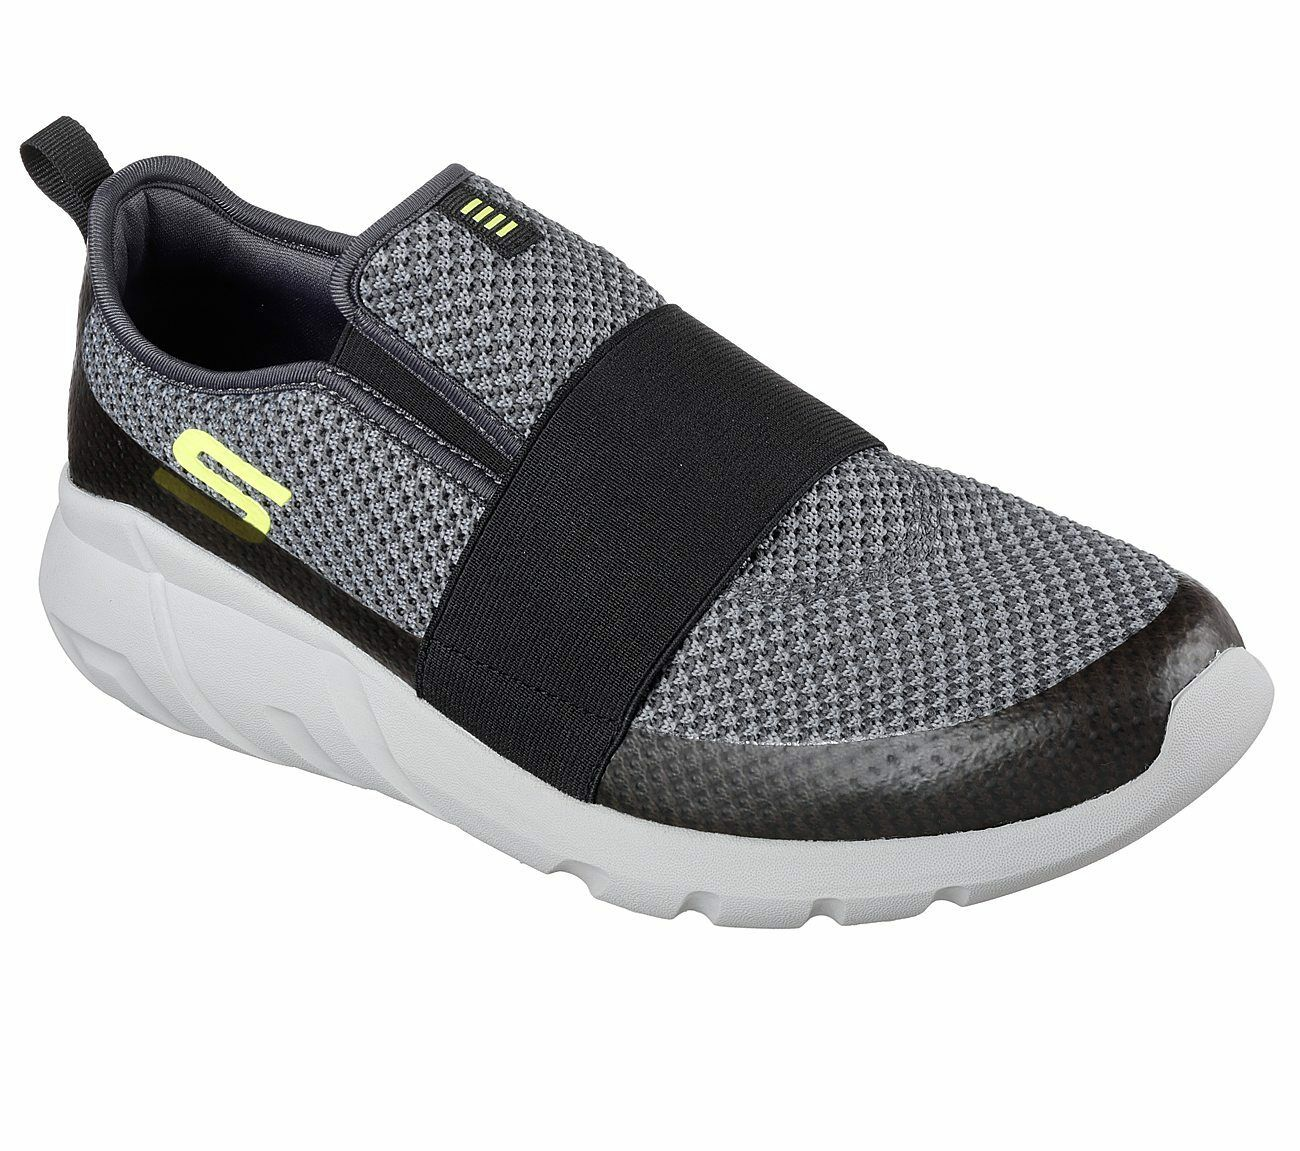 Skechers Men's Dilley Charcoal/Lime 52806/CCLM New